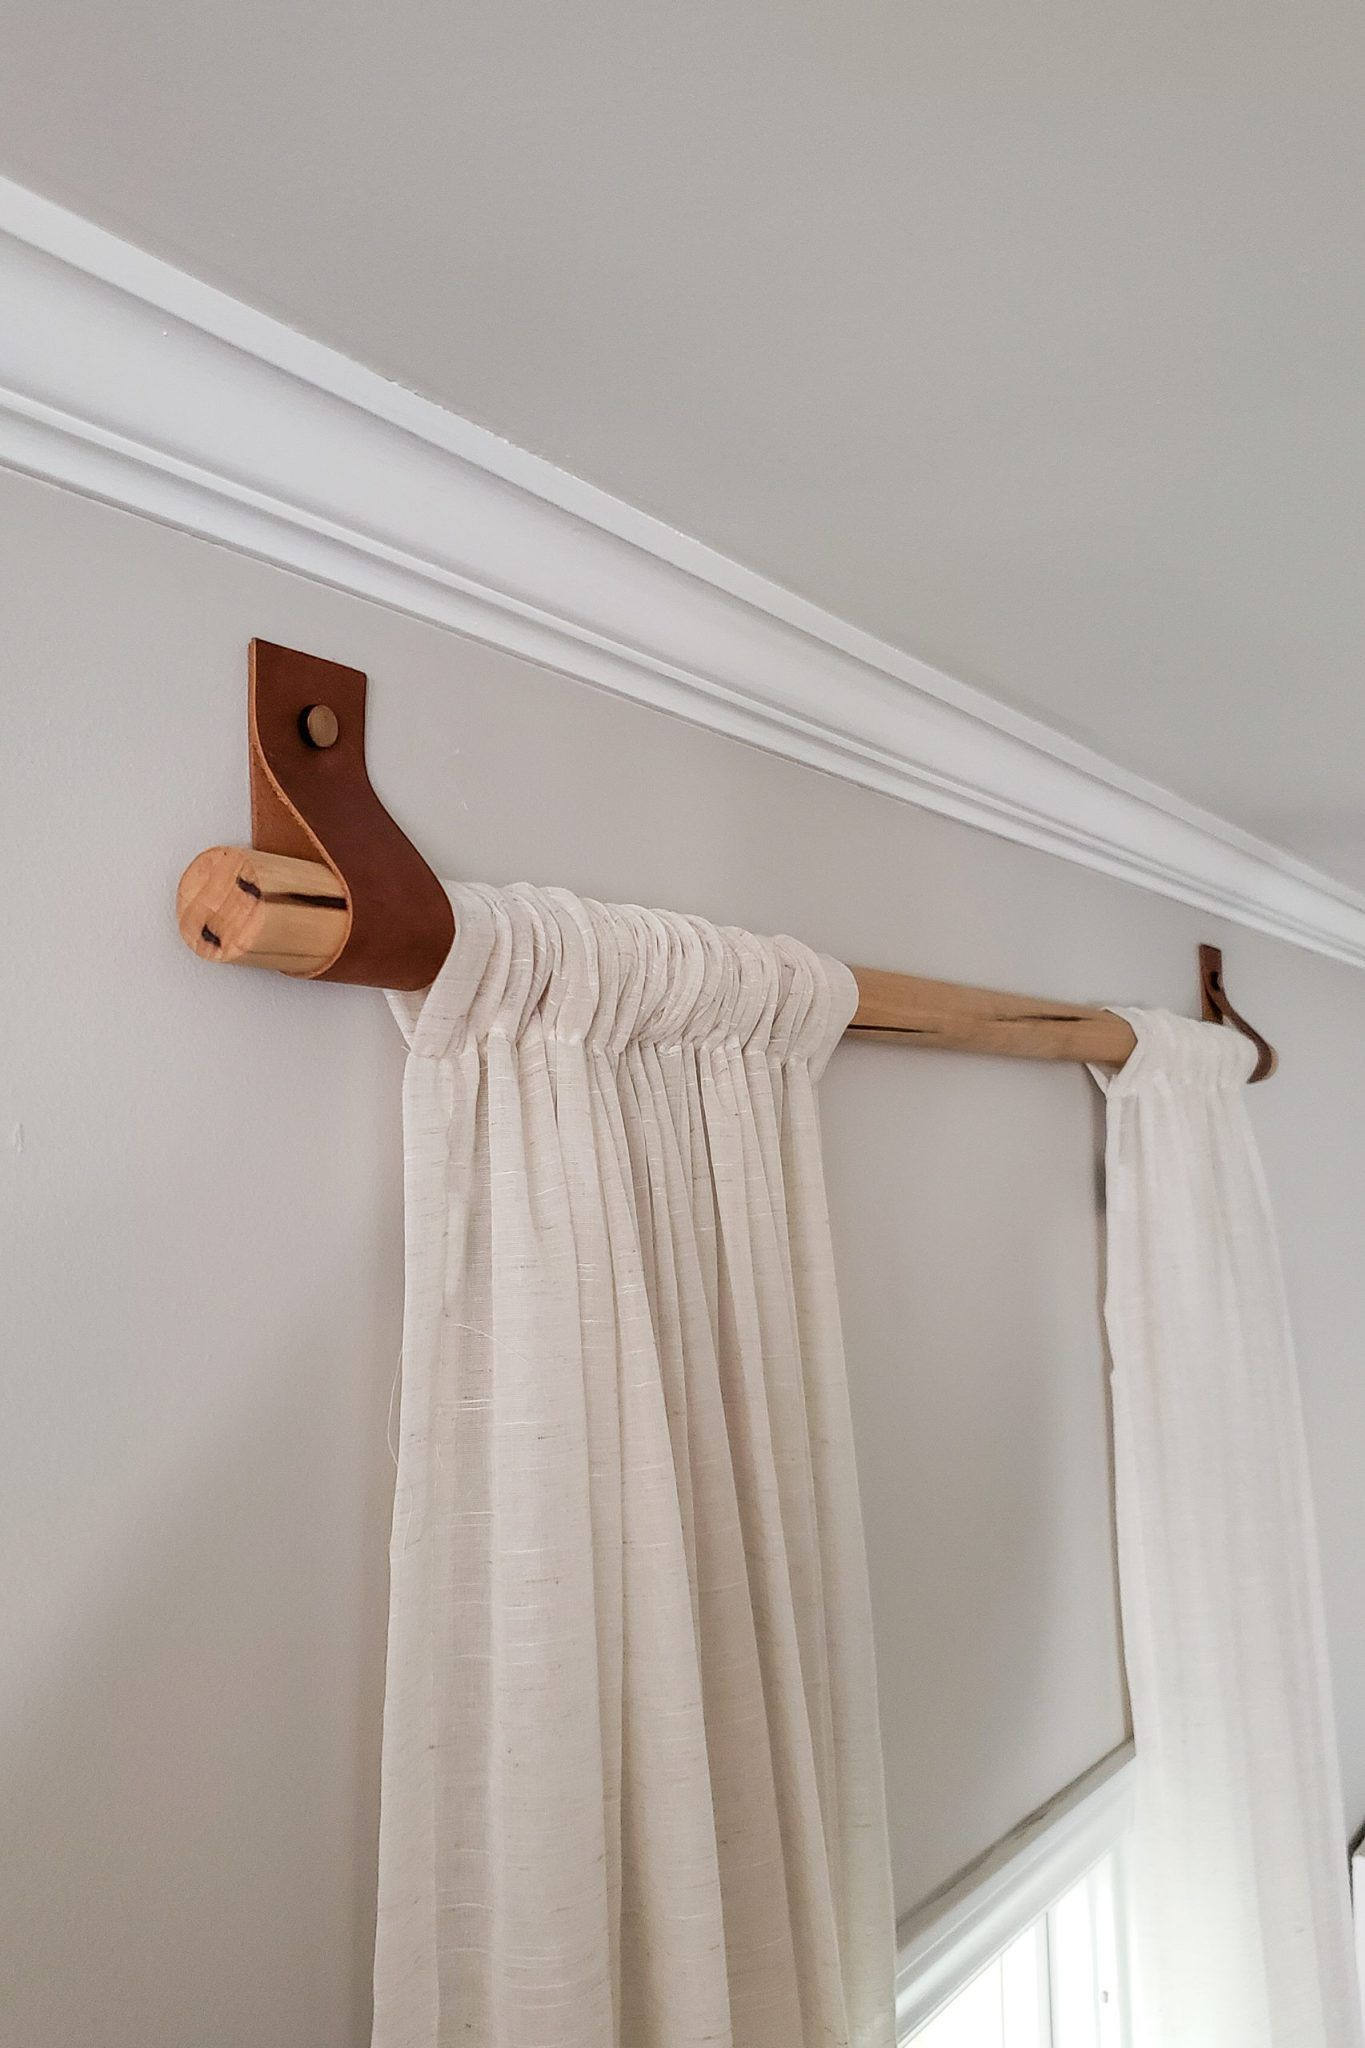 DIY Wood Curtain Rods with Leather Straps for Under $10 | Dani Koch